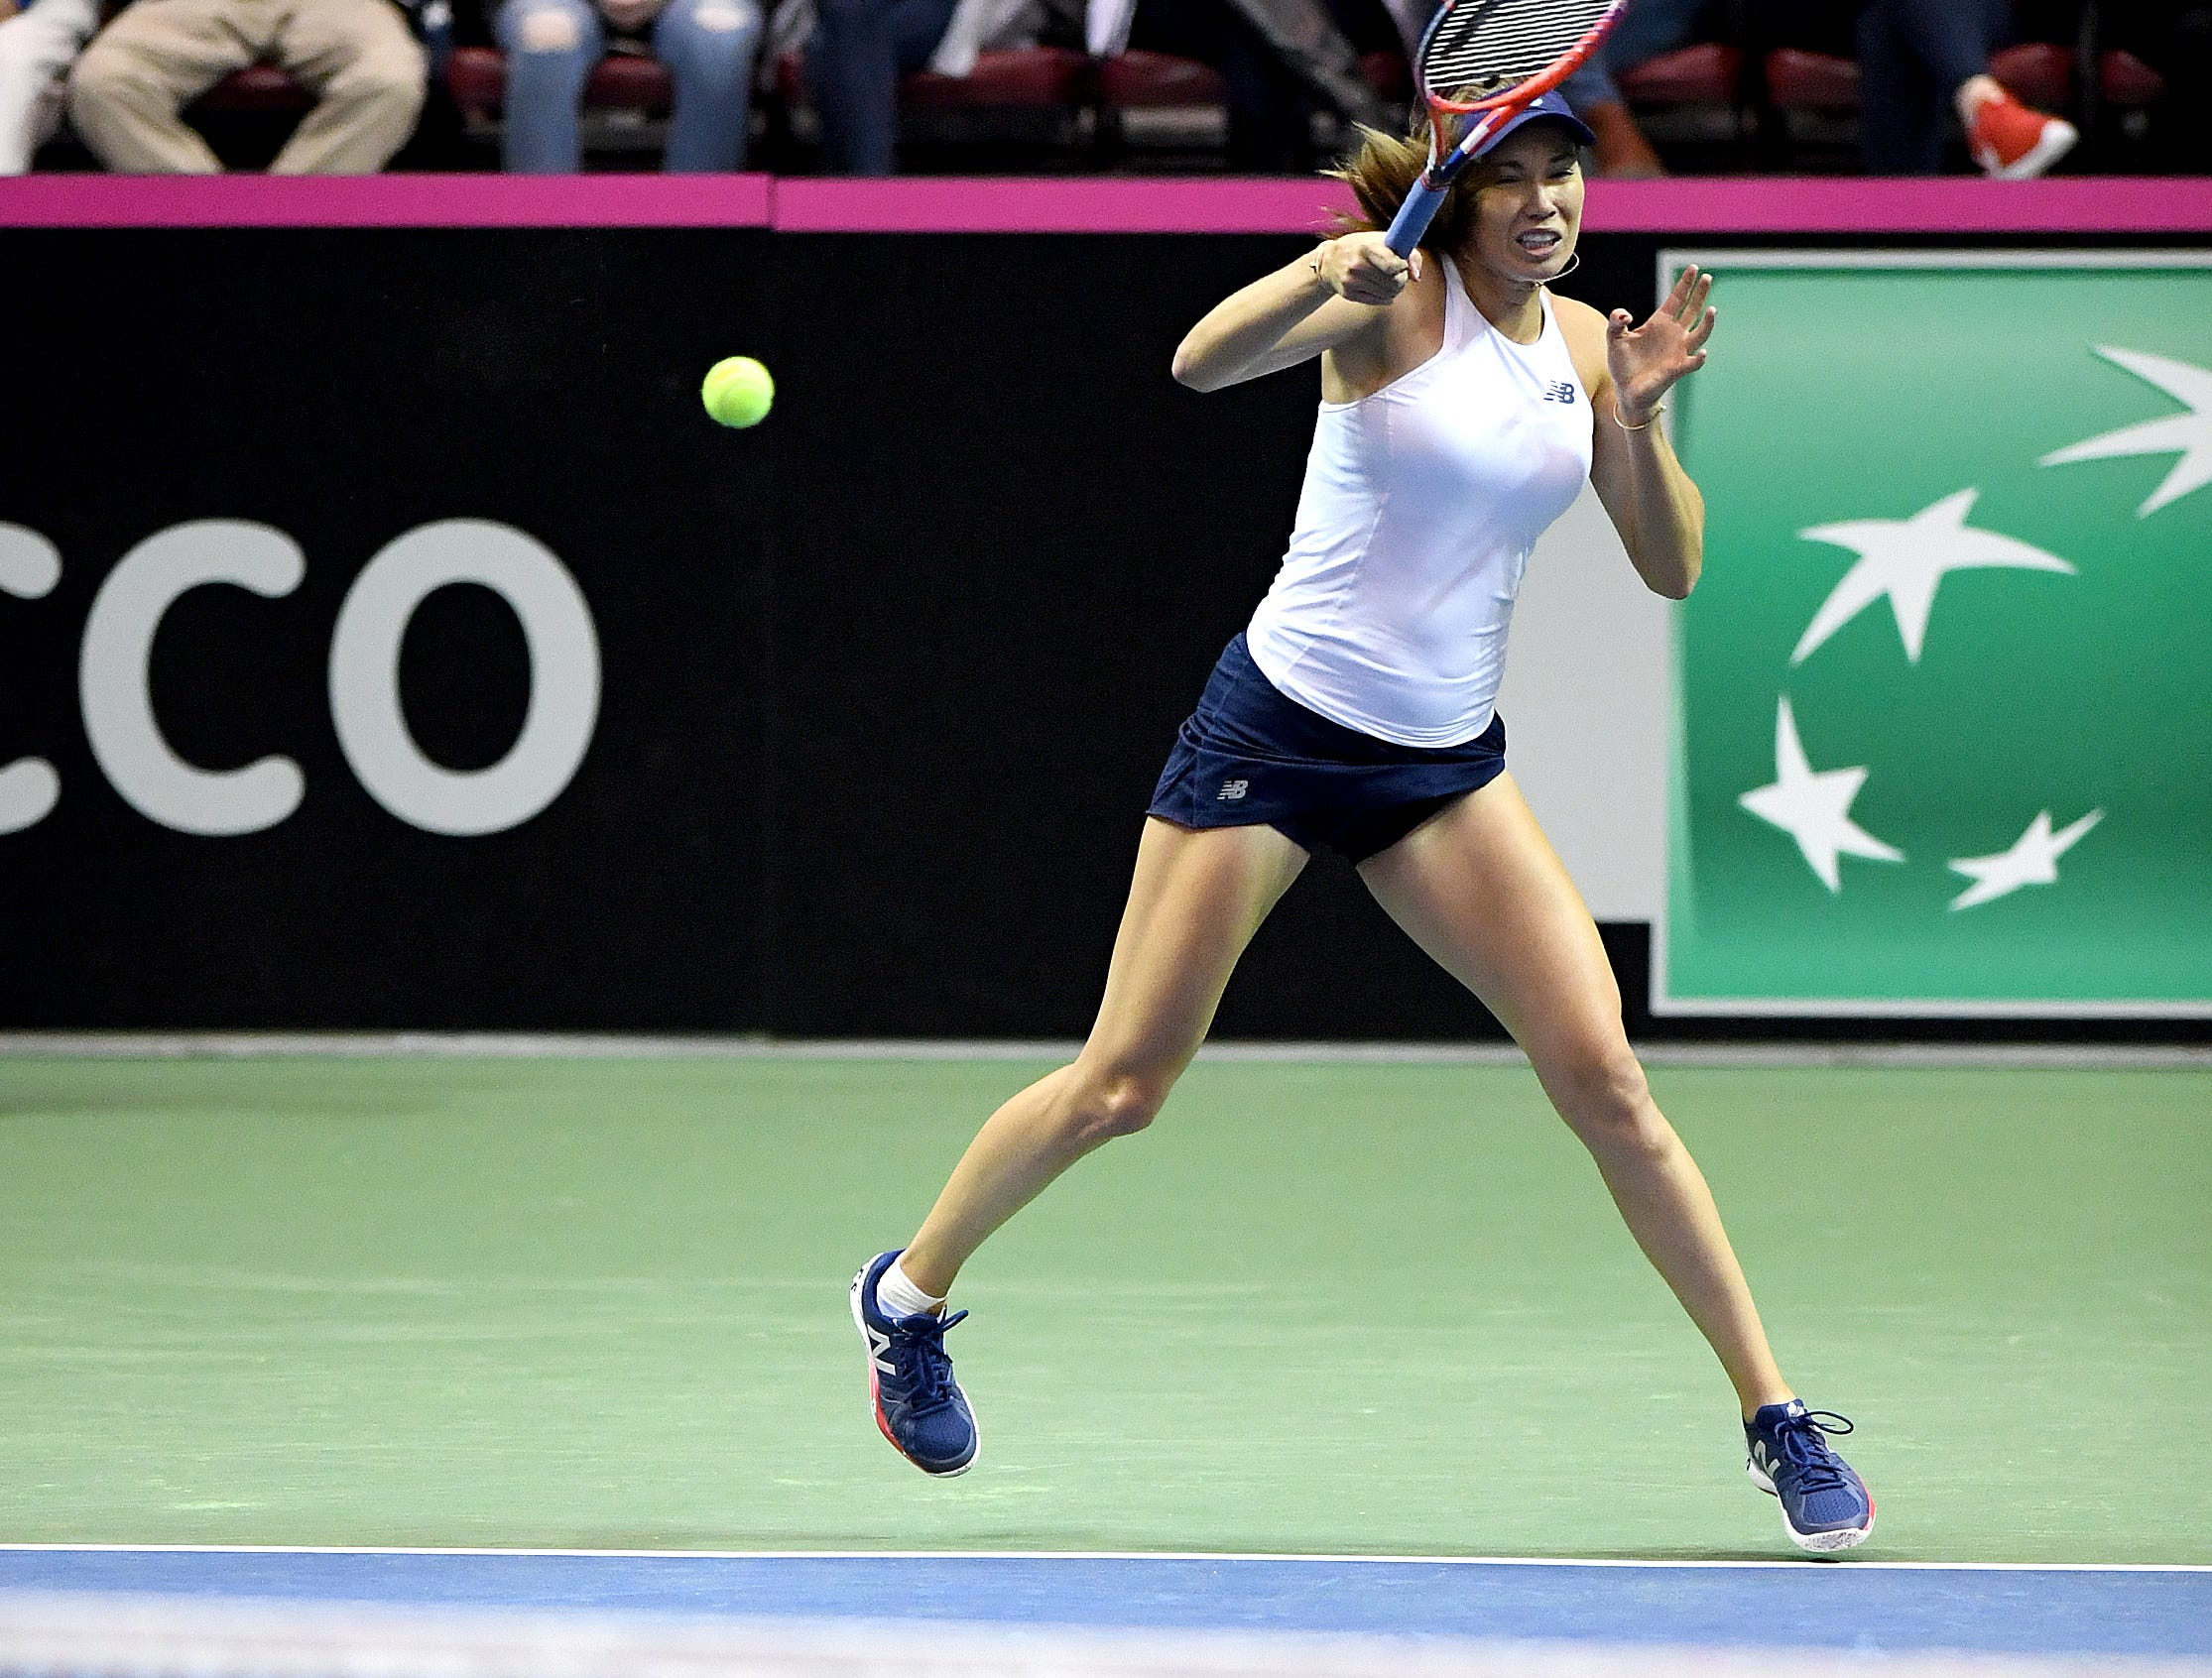 Team USA's Danielle Collins returns the ball during her match against Team Australia's Daria Gavrilova in the first round of the Fed Cup at the U.S. Cellular Center on Feb. 10, 2019.